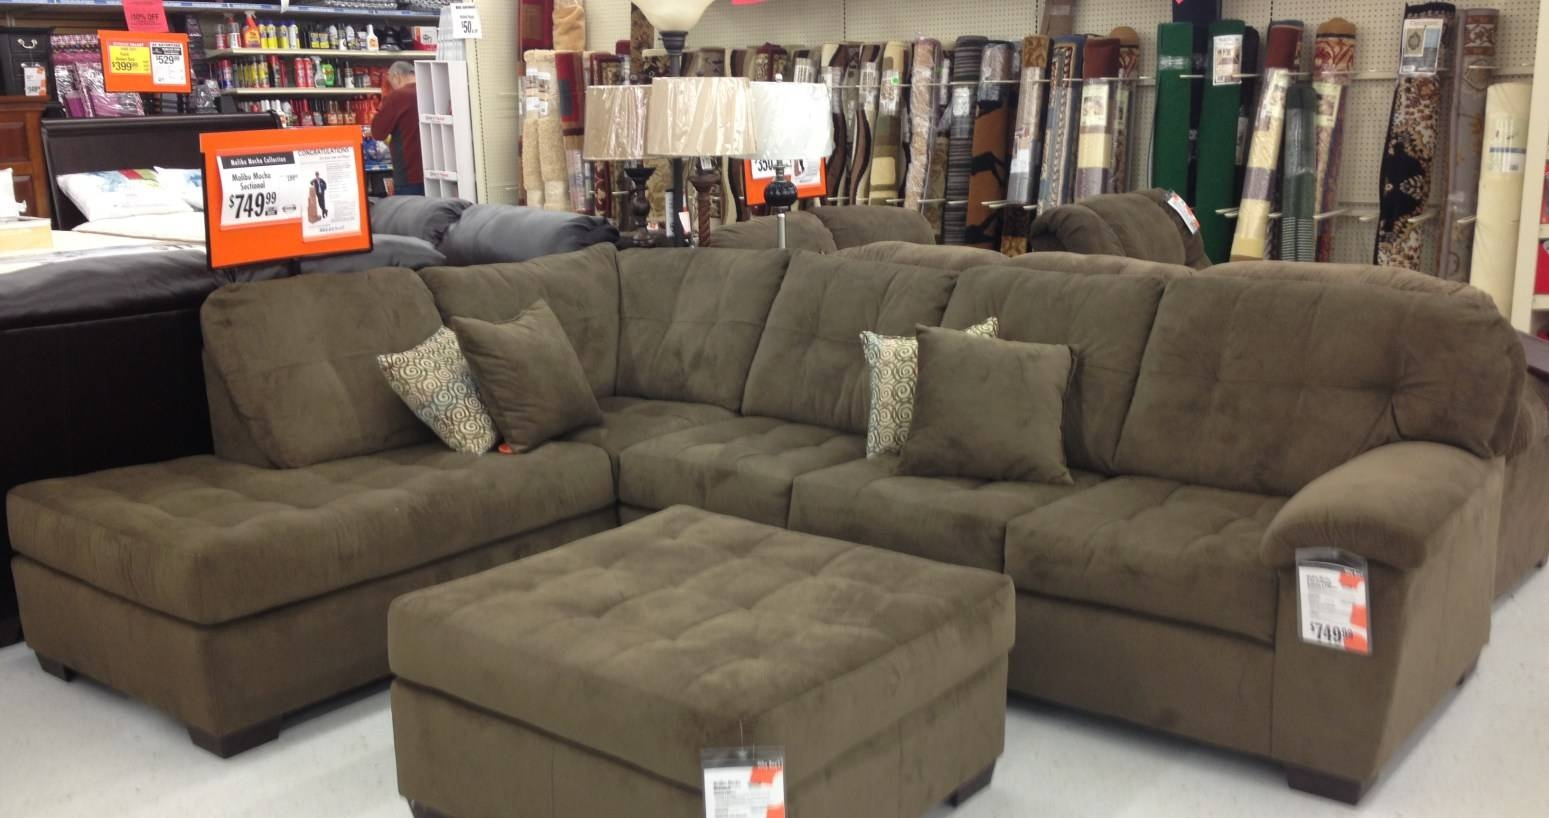 15 Best Big Lots Simmons Sectional Sofas